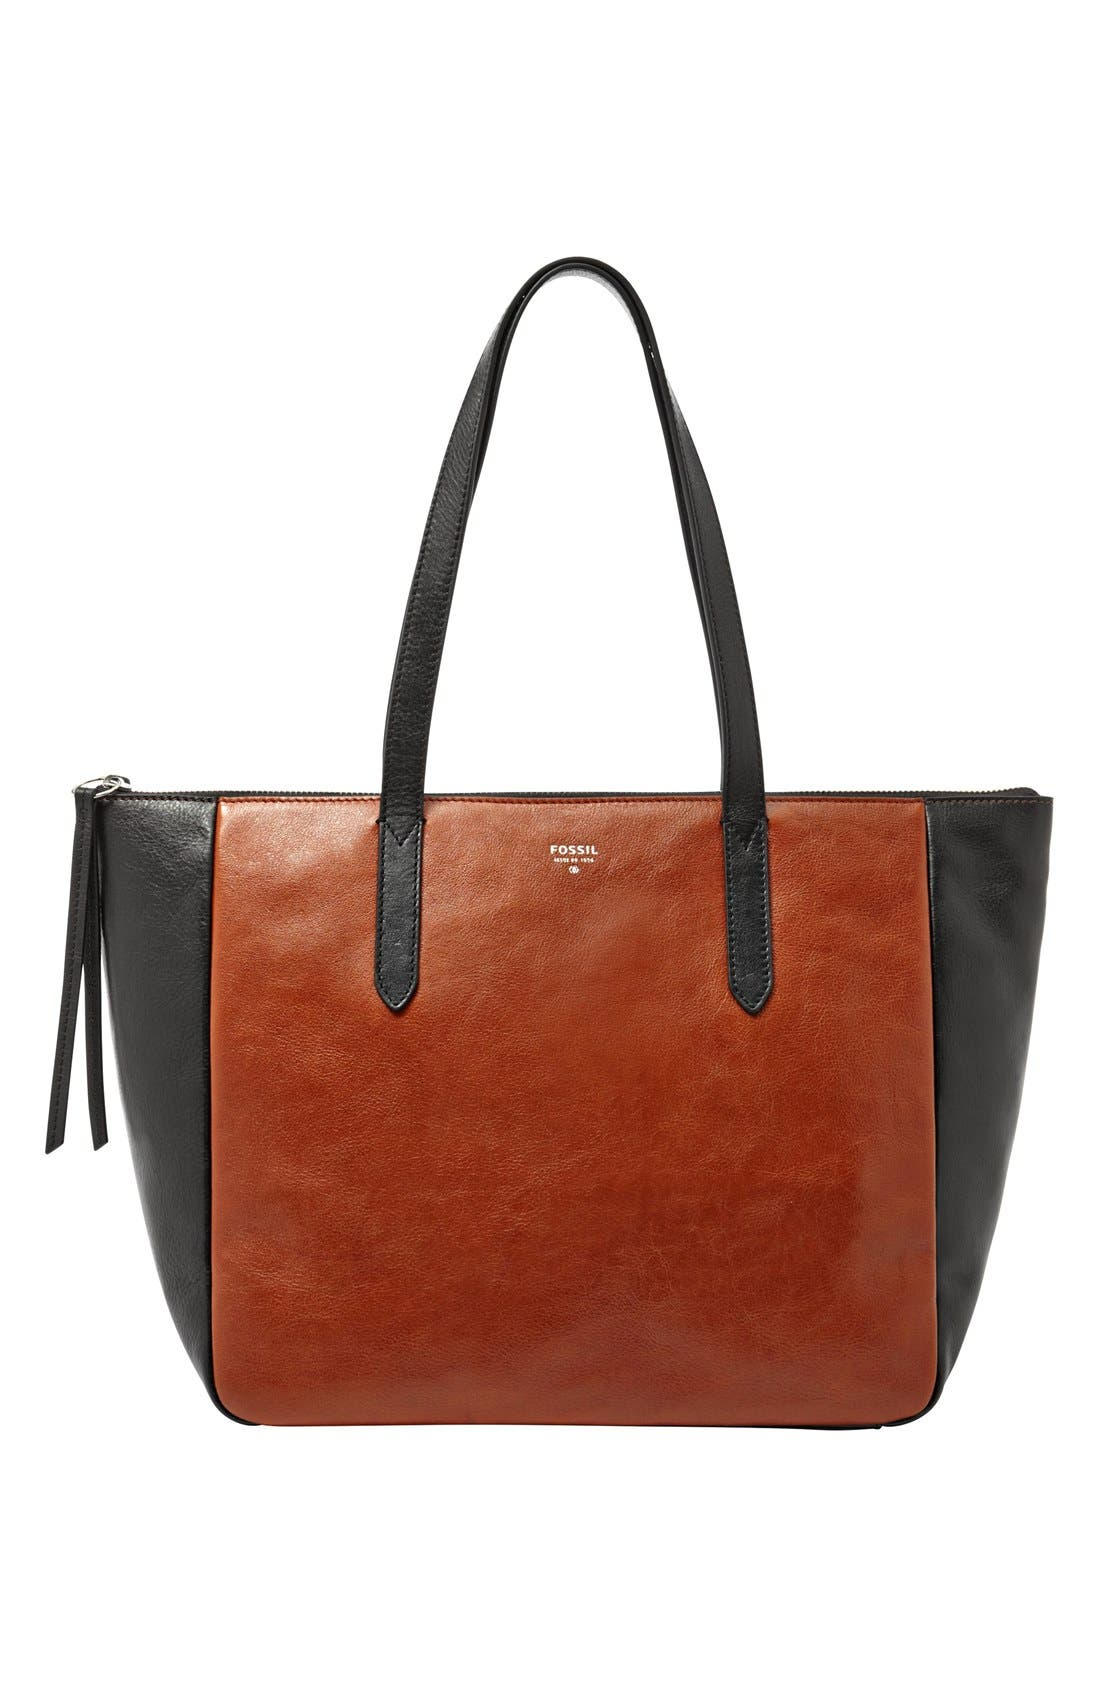 Main Image - Fossil 'Sydney' Colorblock Shopper